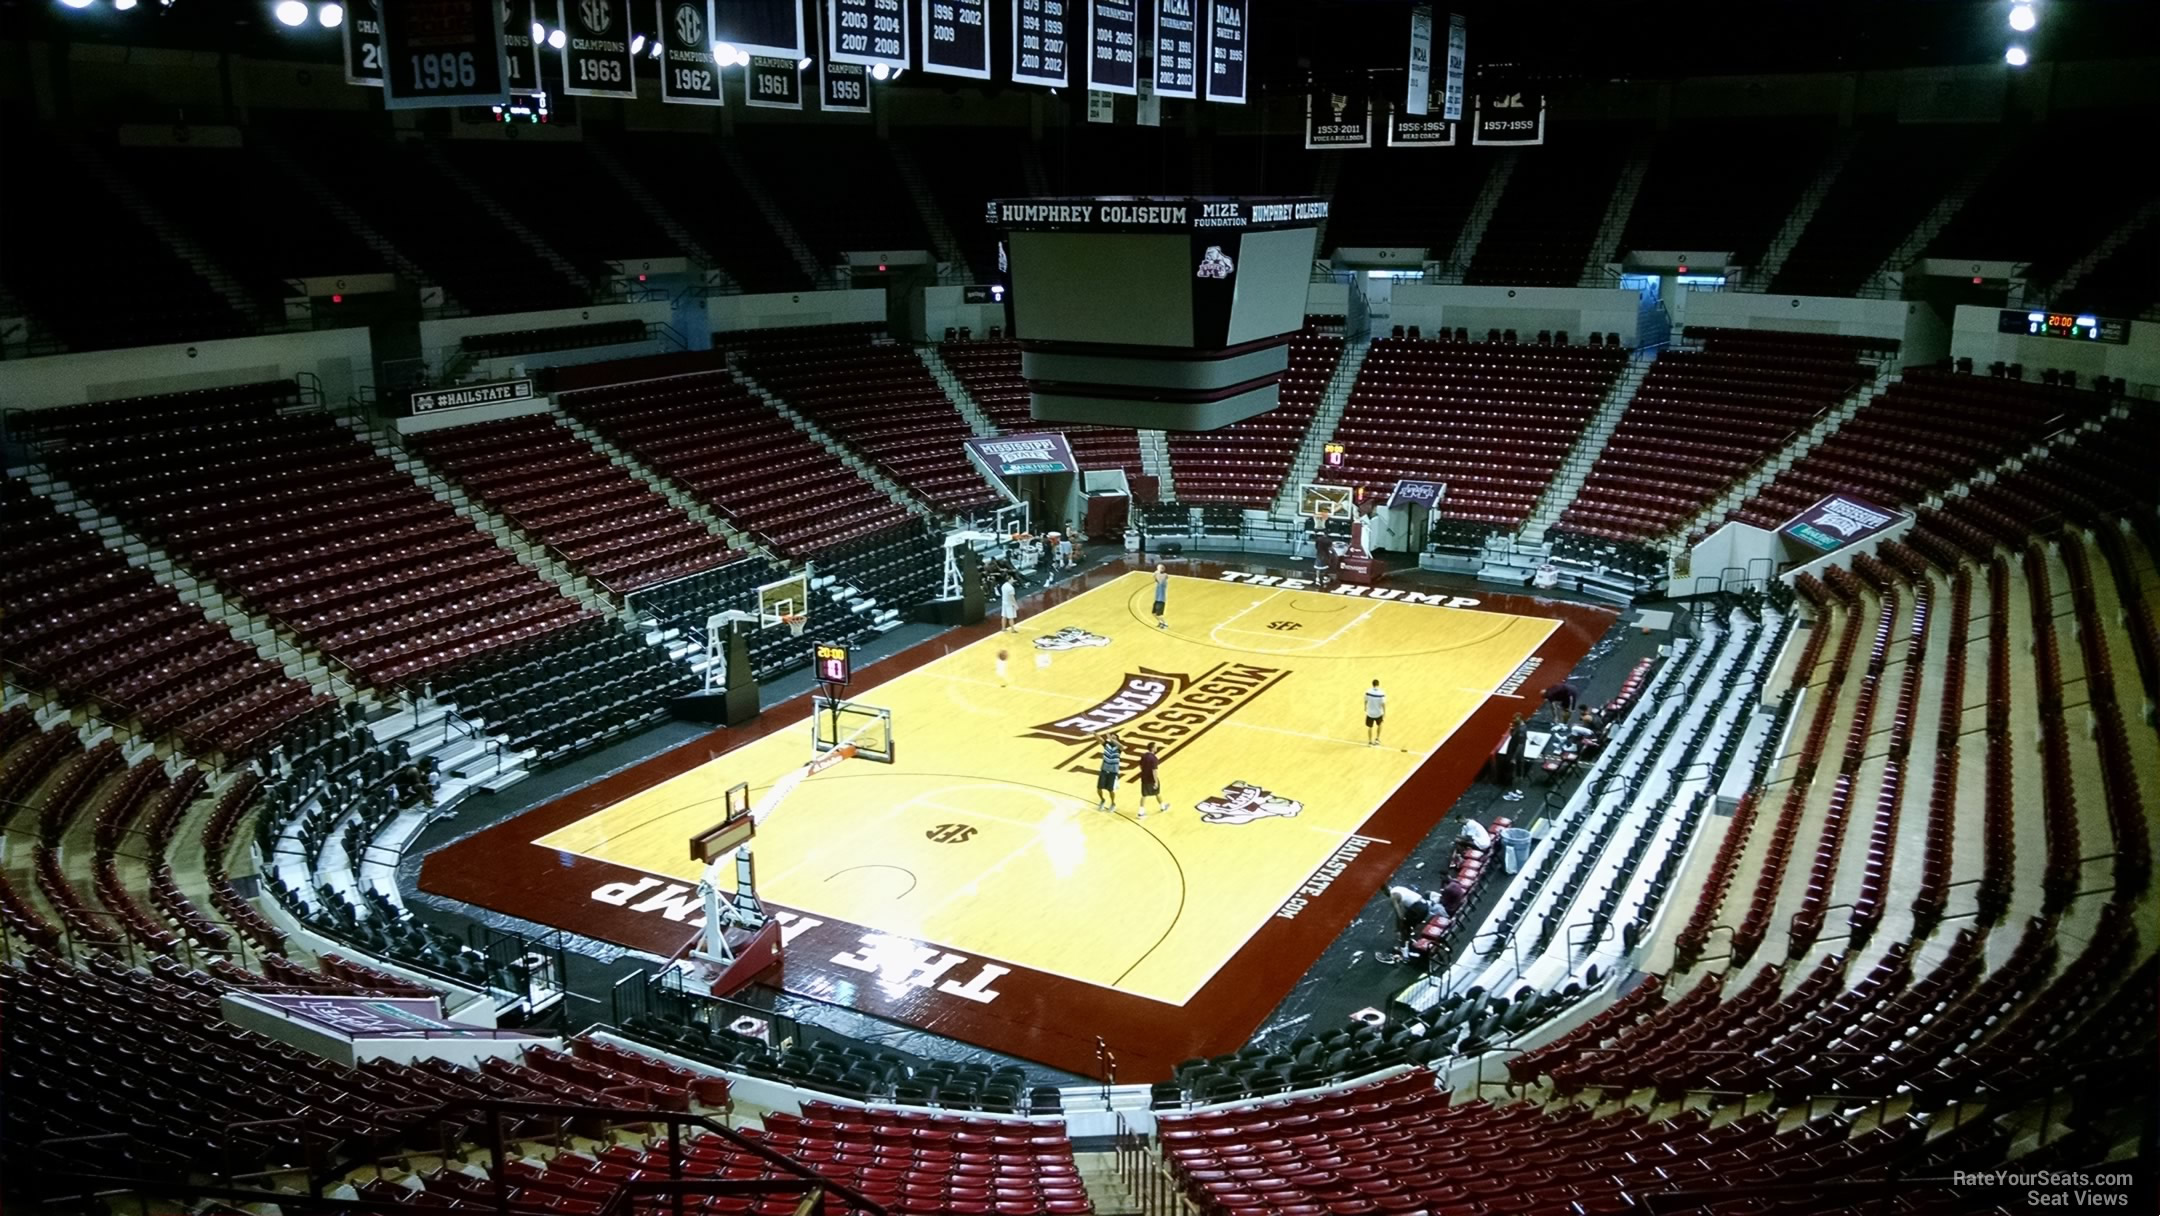 Humphrey Coliseum Section 234 - RateYourSeats.com